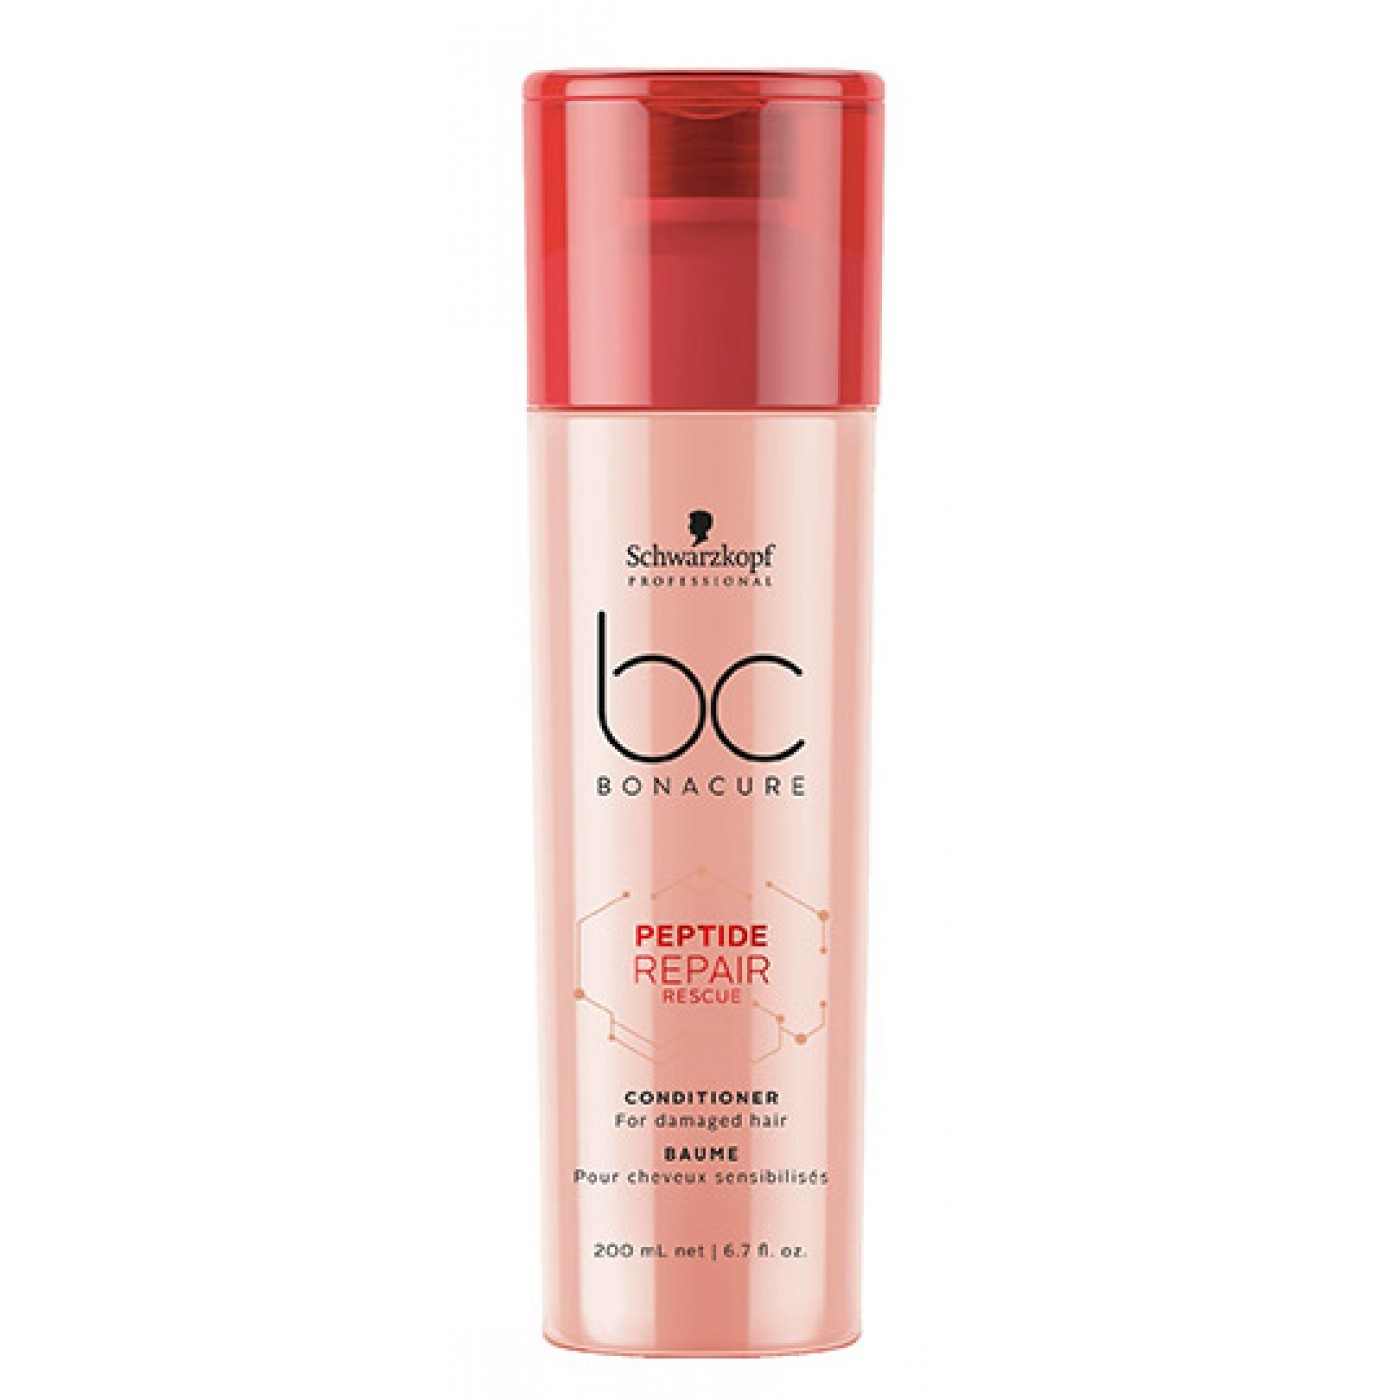 Schwarzkopf Professional BC Bonacure Repair Rescue Conditioner - 200ml